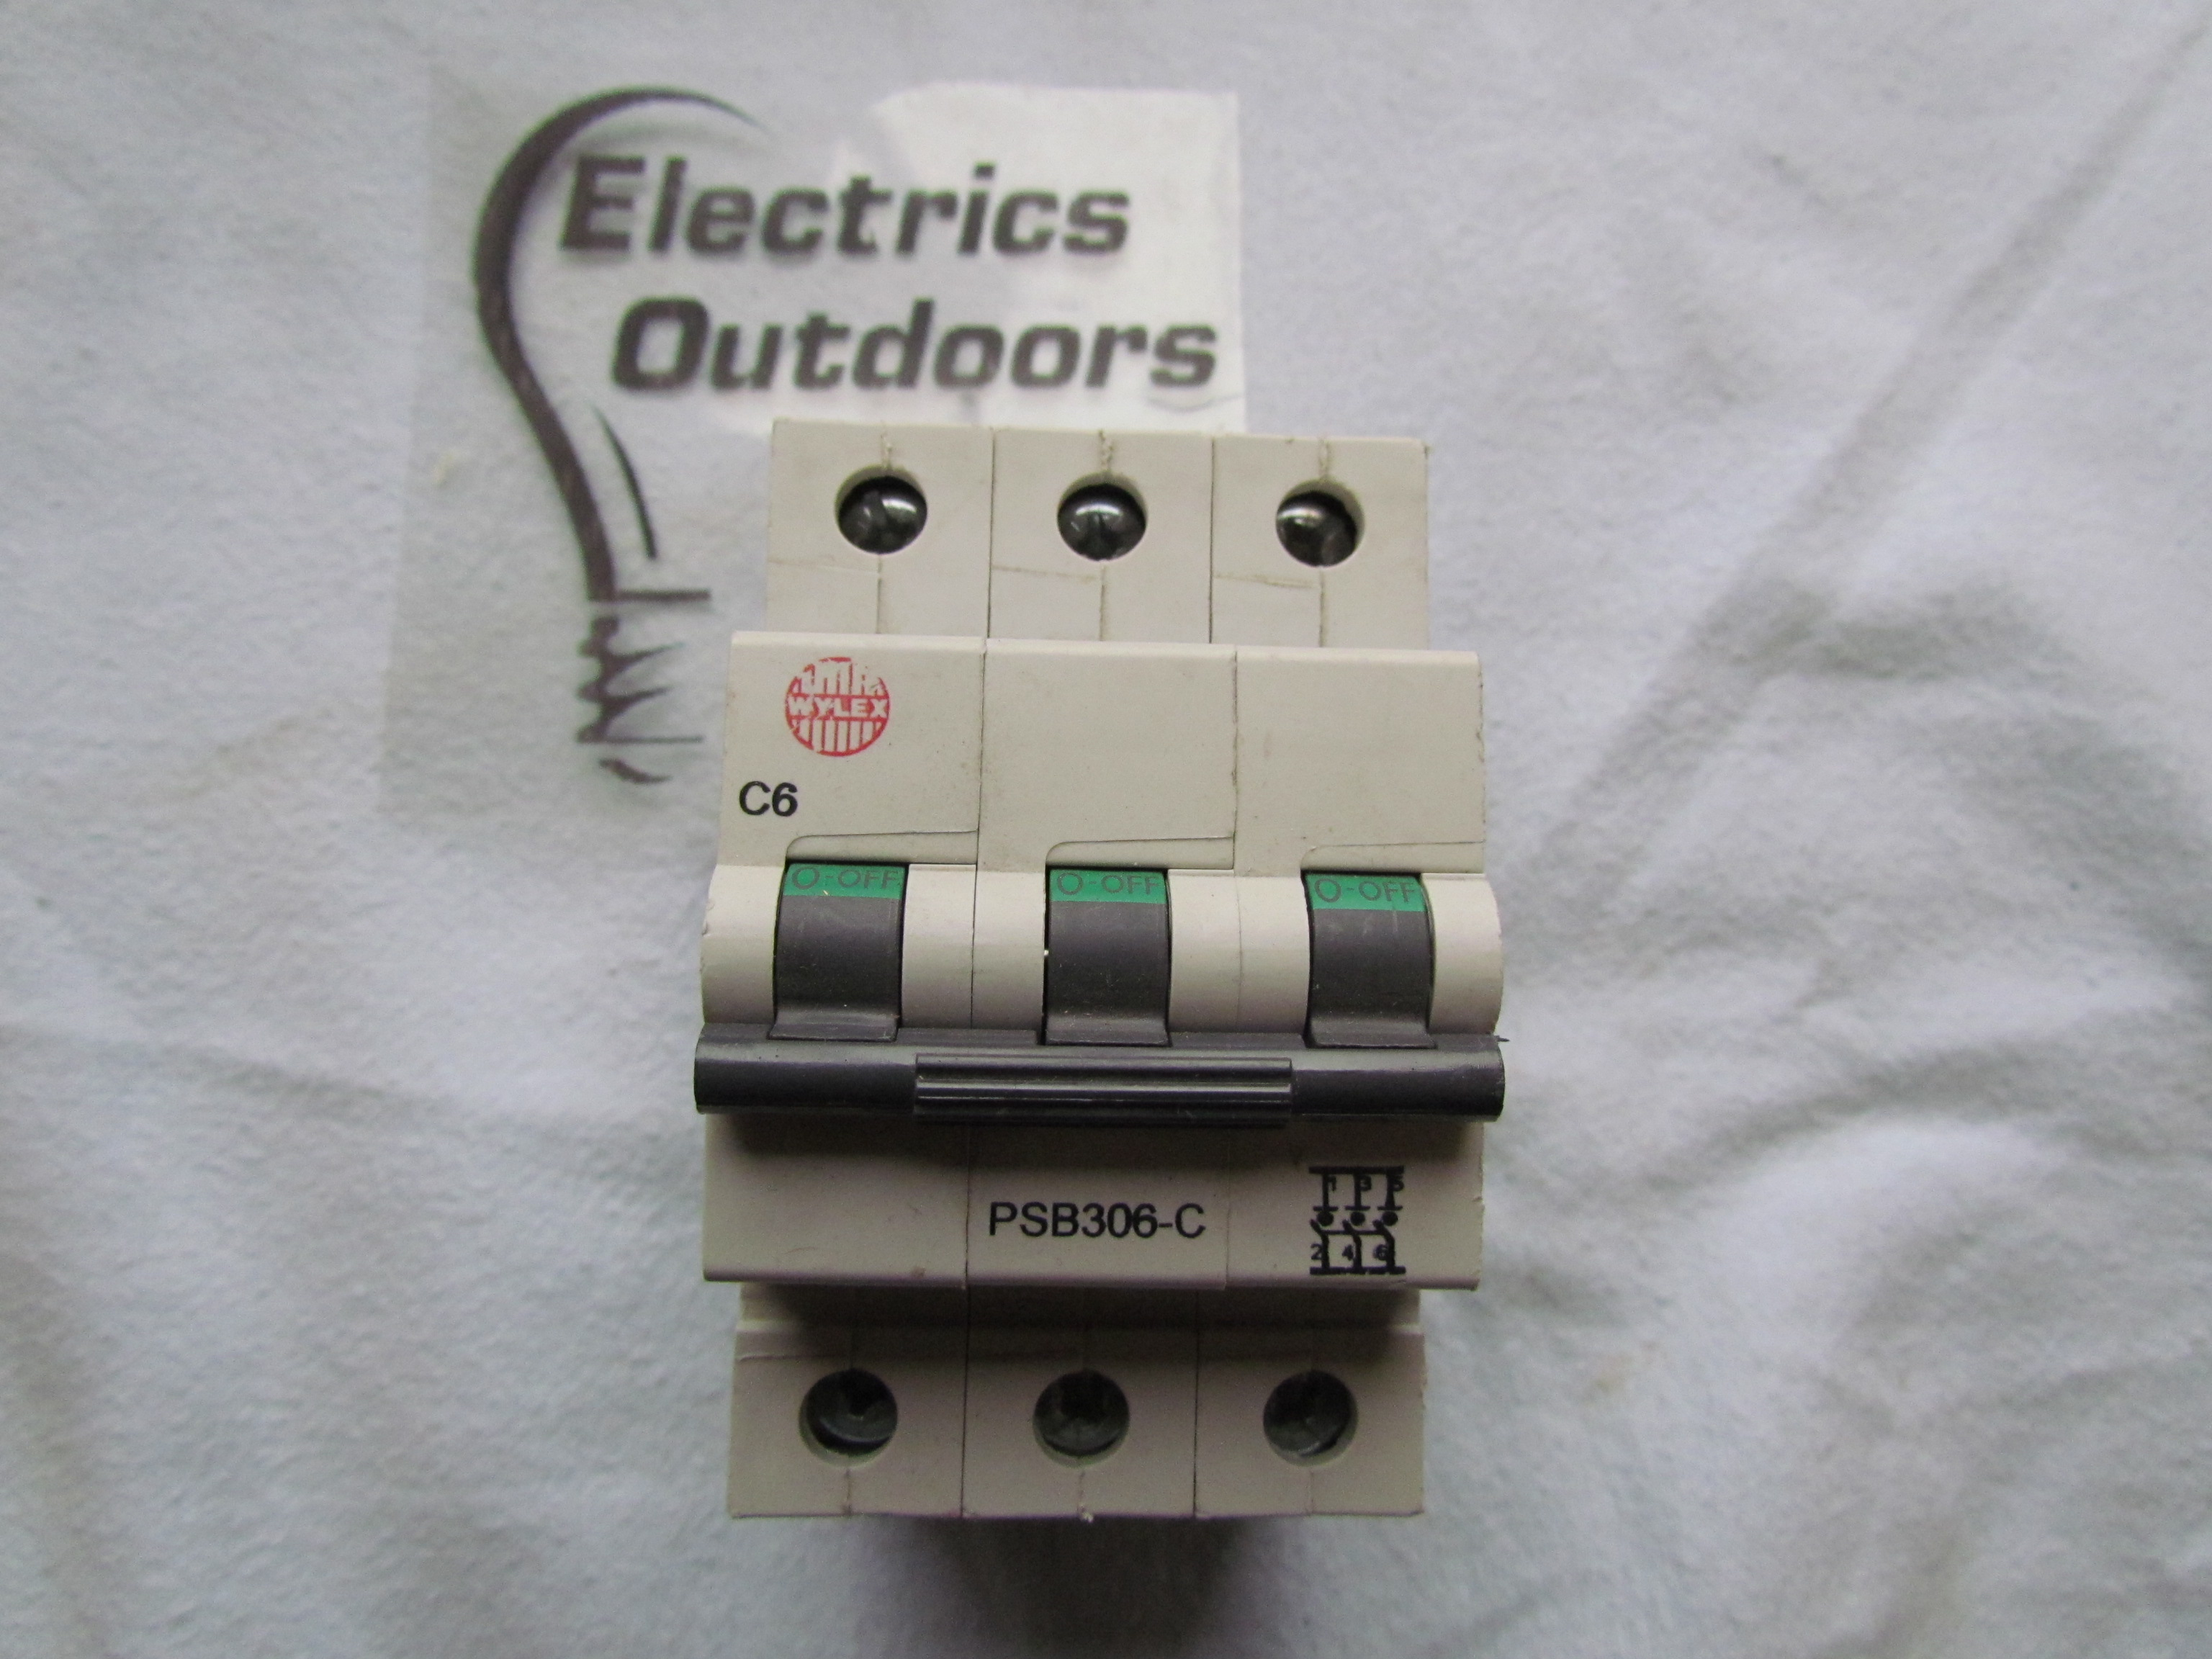 NEW WYLEX 6 AMP TYPE C MCB CIRCUIT BREAKER 3 POLE PSB306-C IEC 8